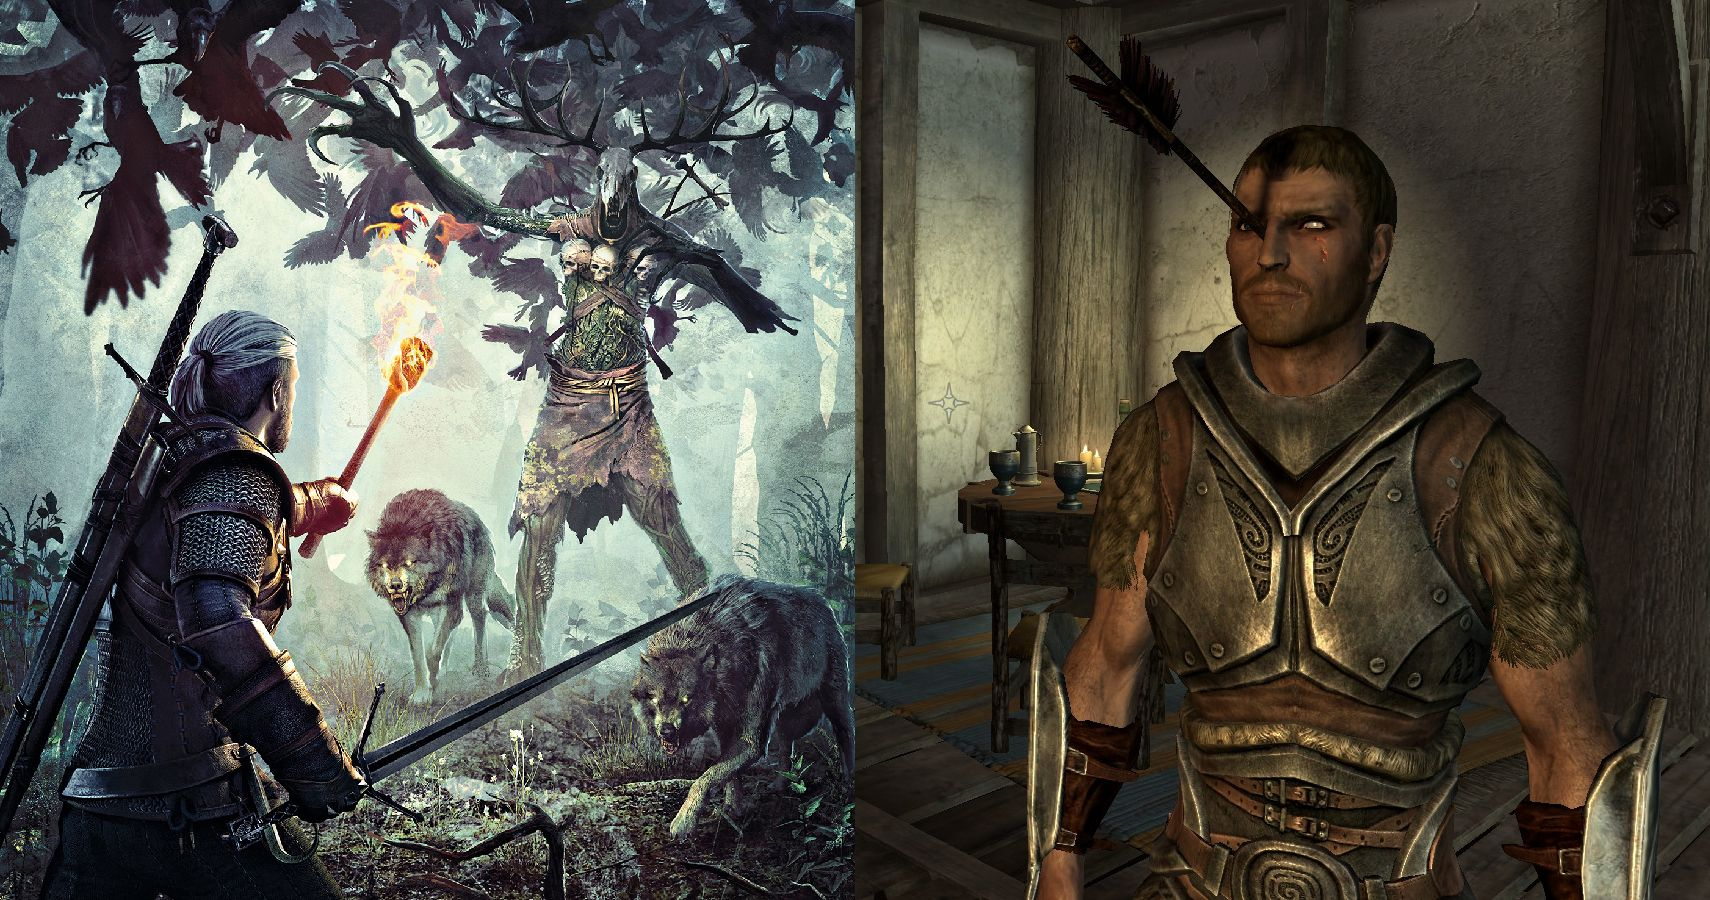 15 Reasons Skyrim Is Worse Than The Witcher 3 | TheGamer